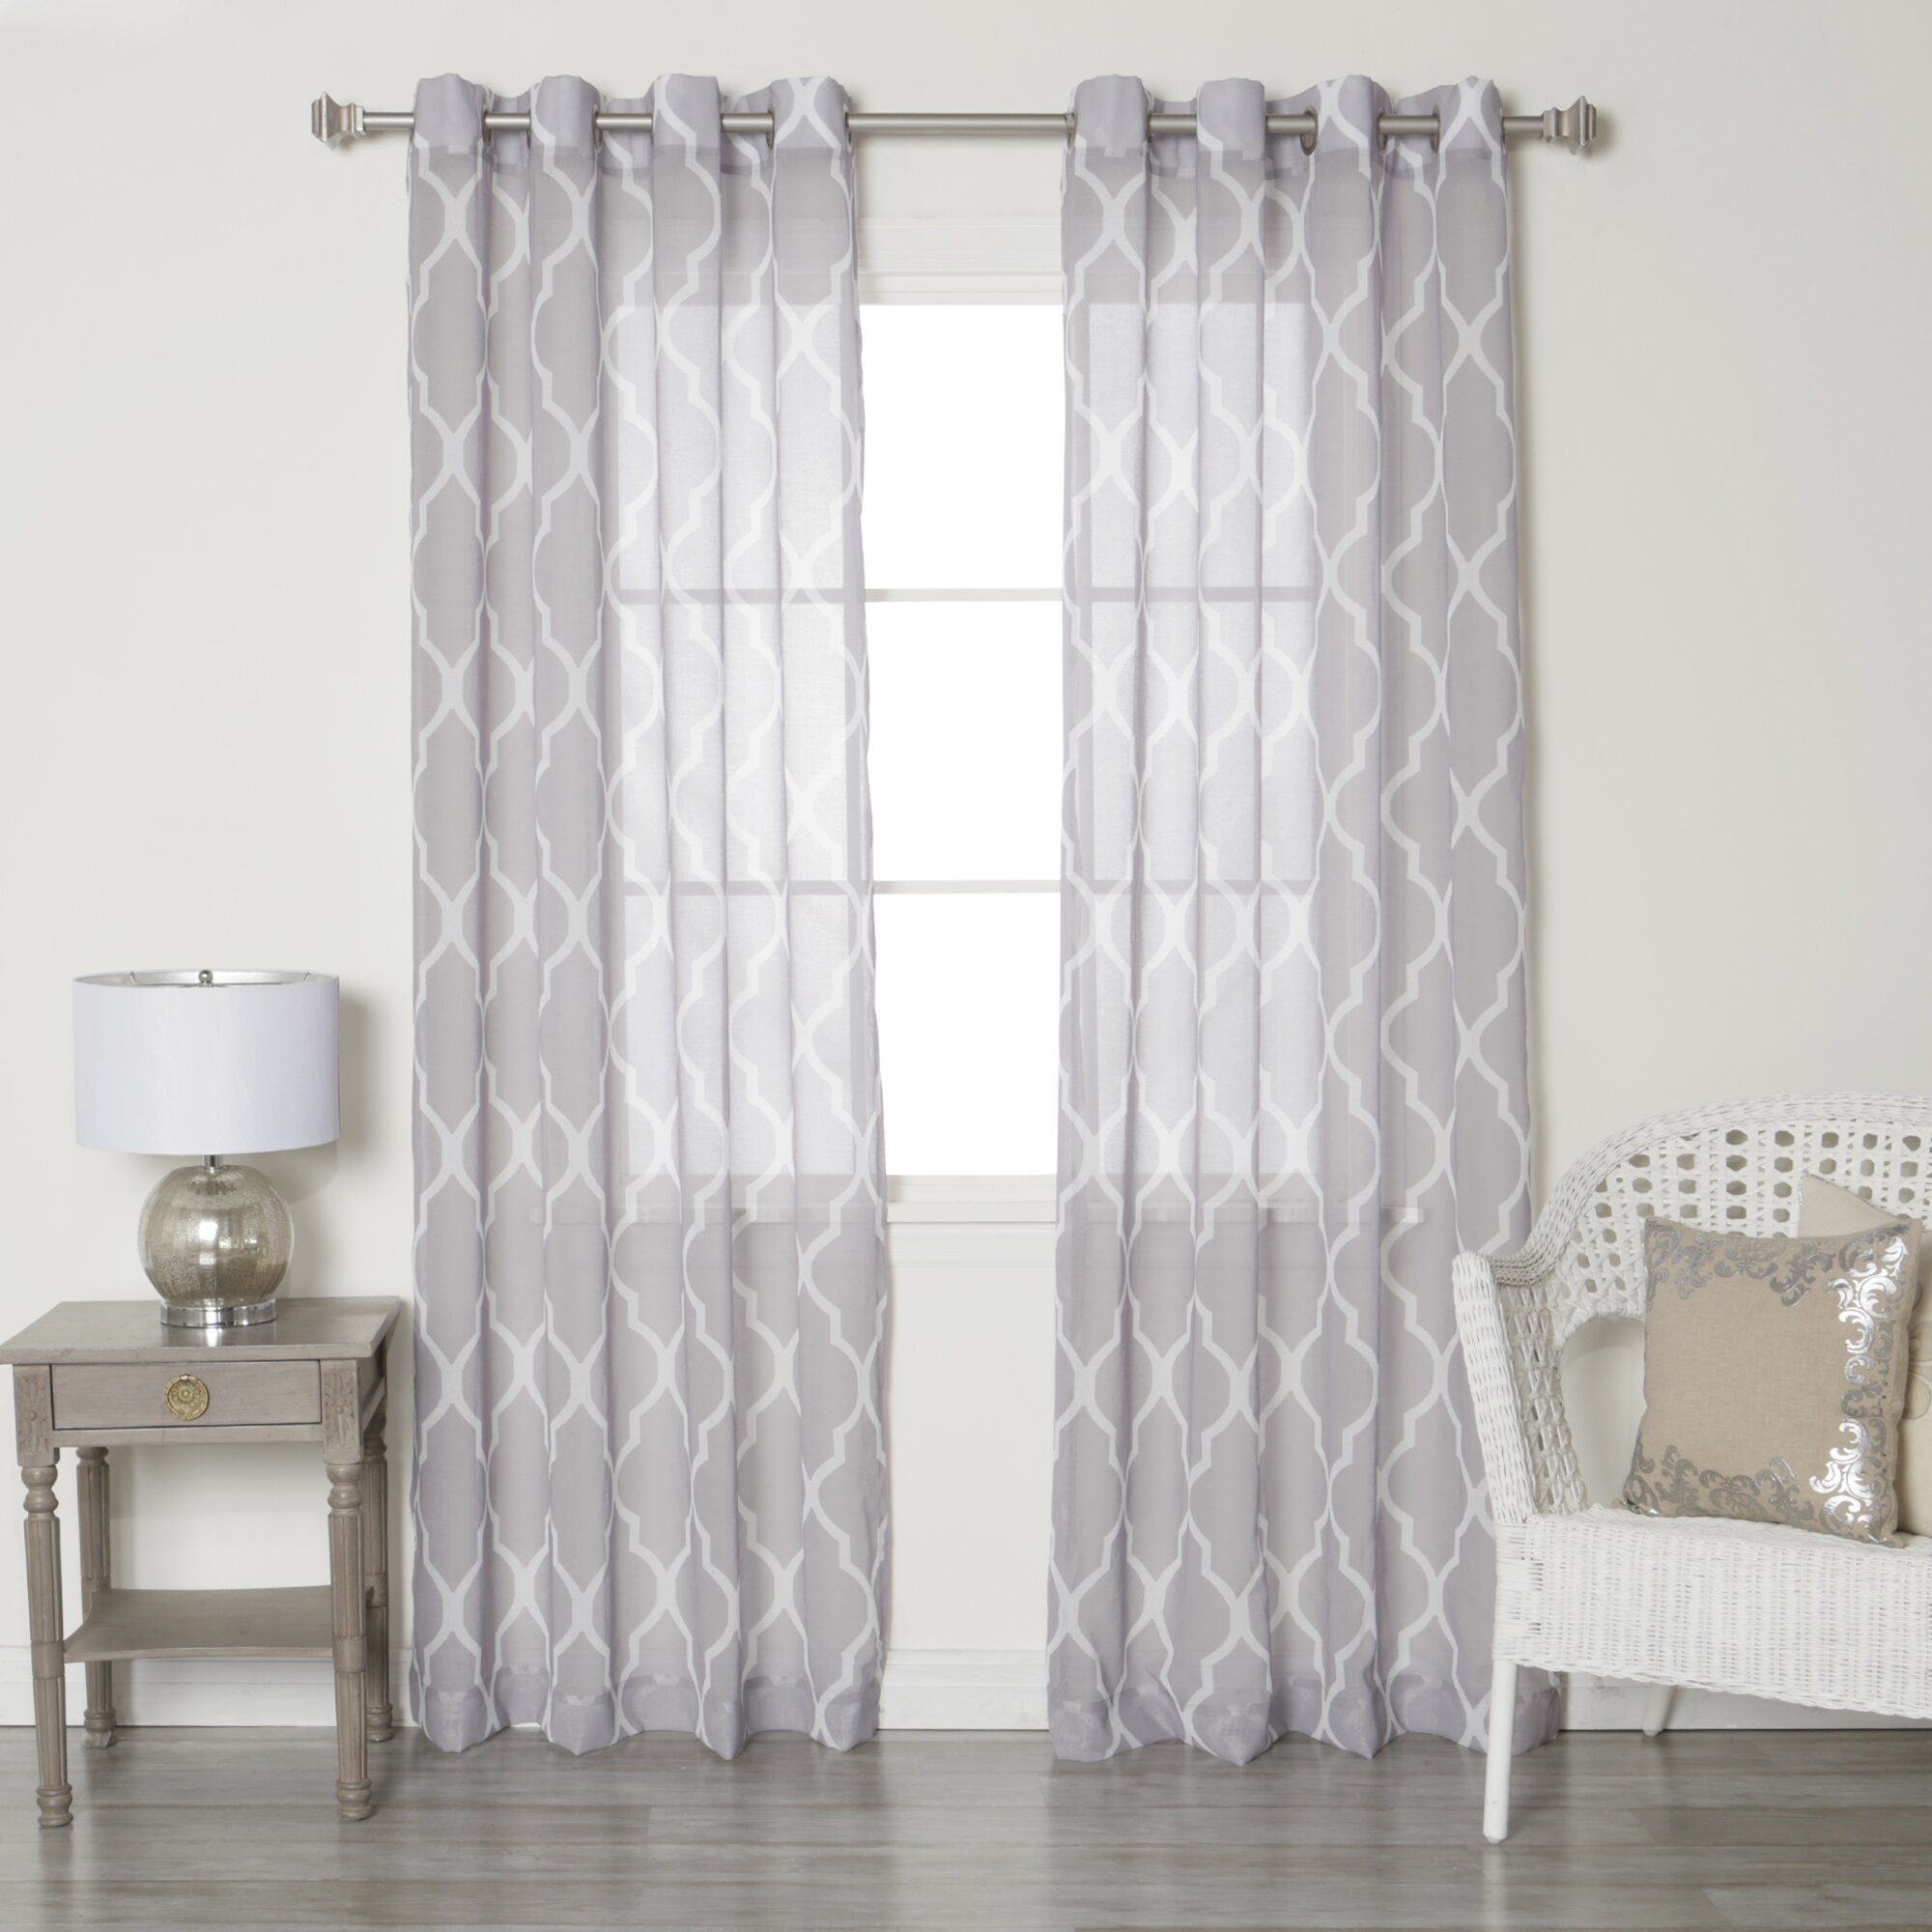 Best Home Fashion Inc Moroccan Grommet Top Sheer Curtain